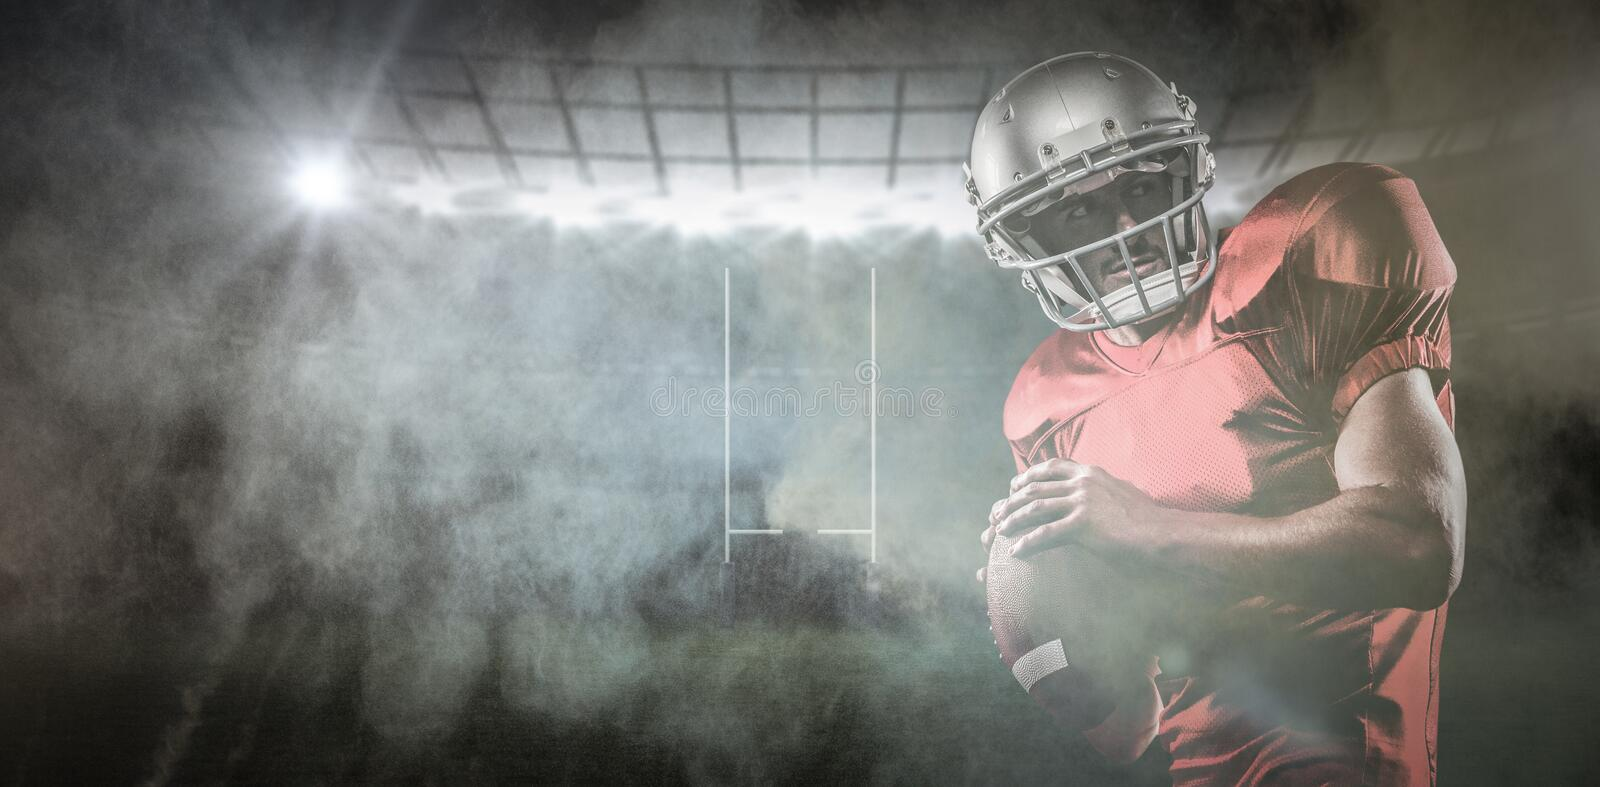 Composite image of american football player in red jersey looking away while holding ball stock photography